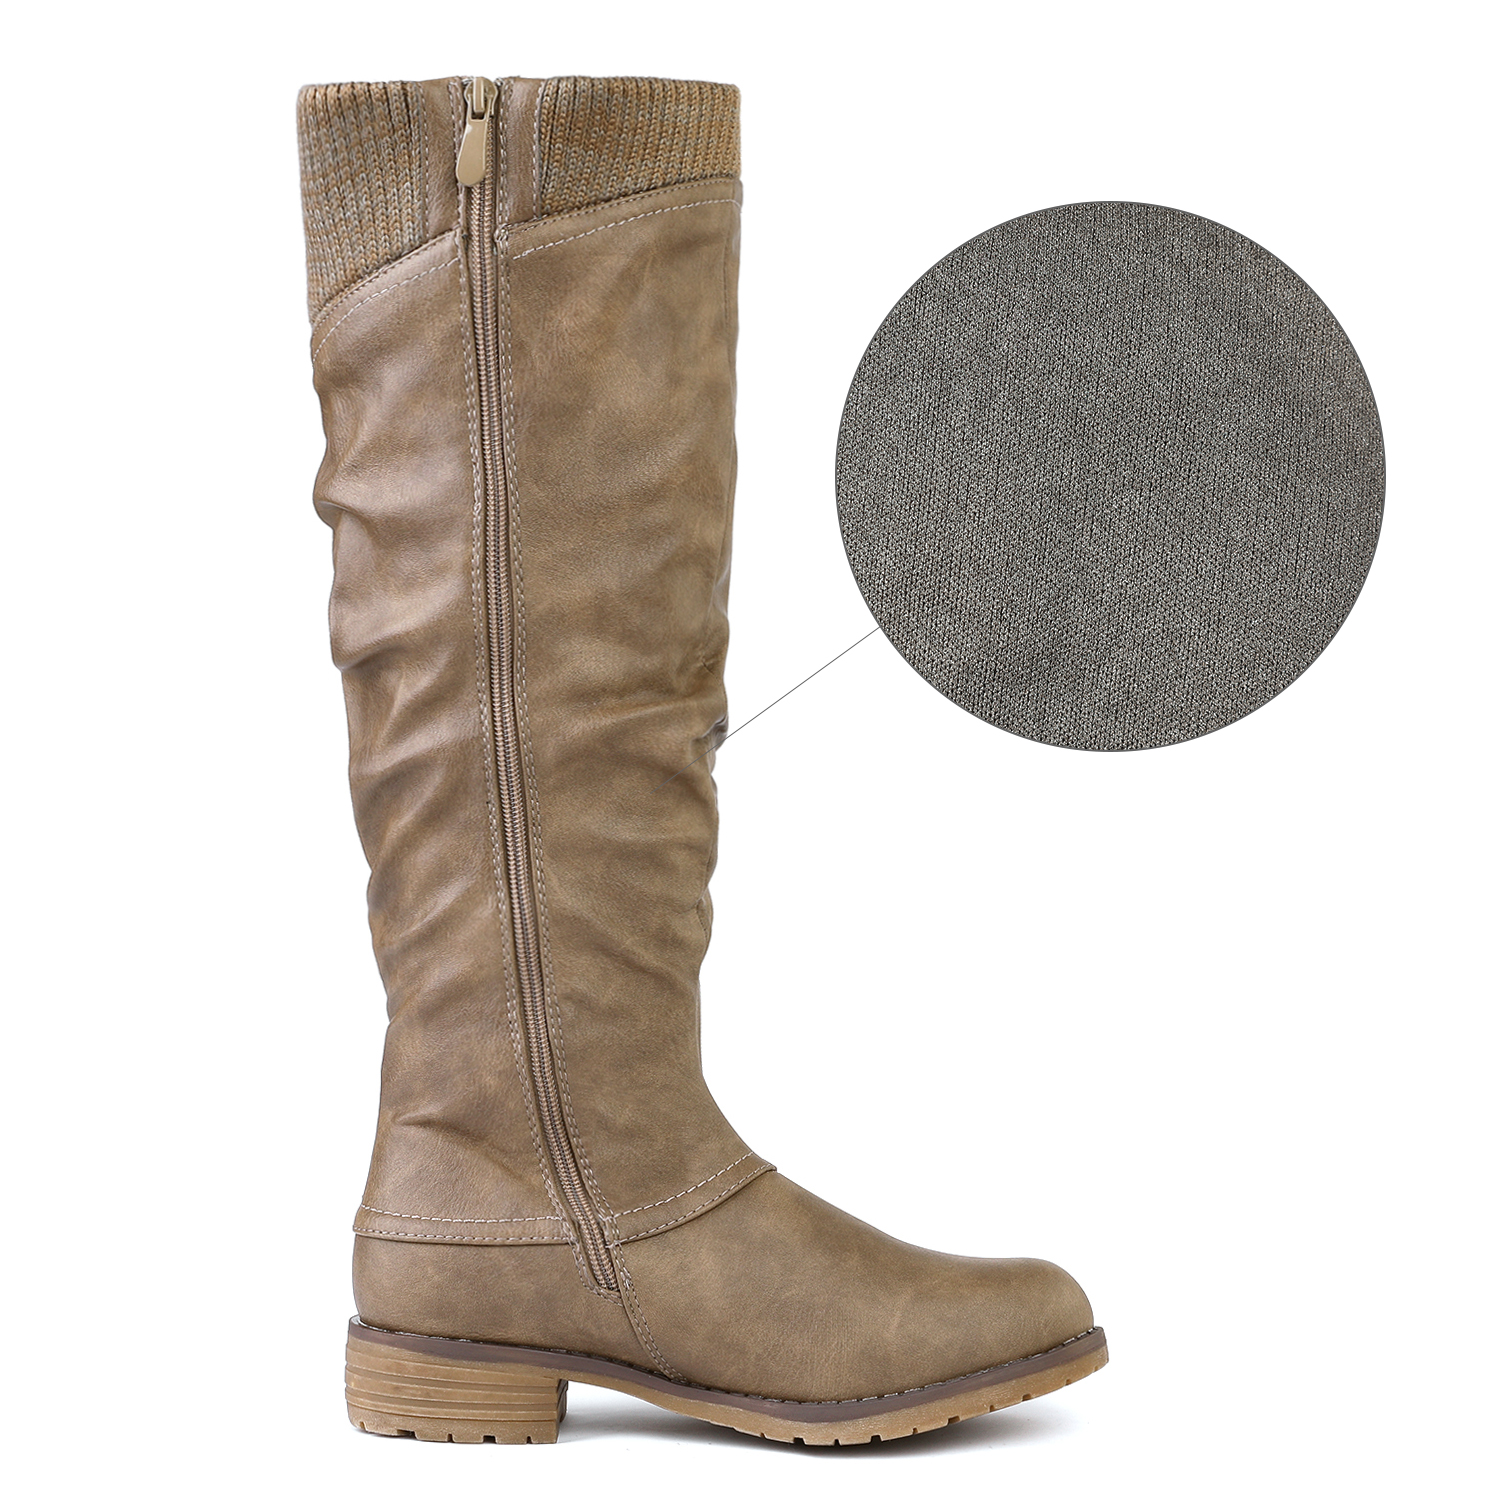 DREAM-PAIRS-Womens-DEPP-Cowgirl-Soft-PU-Leather-Combat-Knee-High-Riding-Boots thumbnail 28